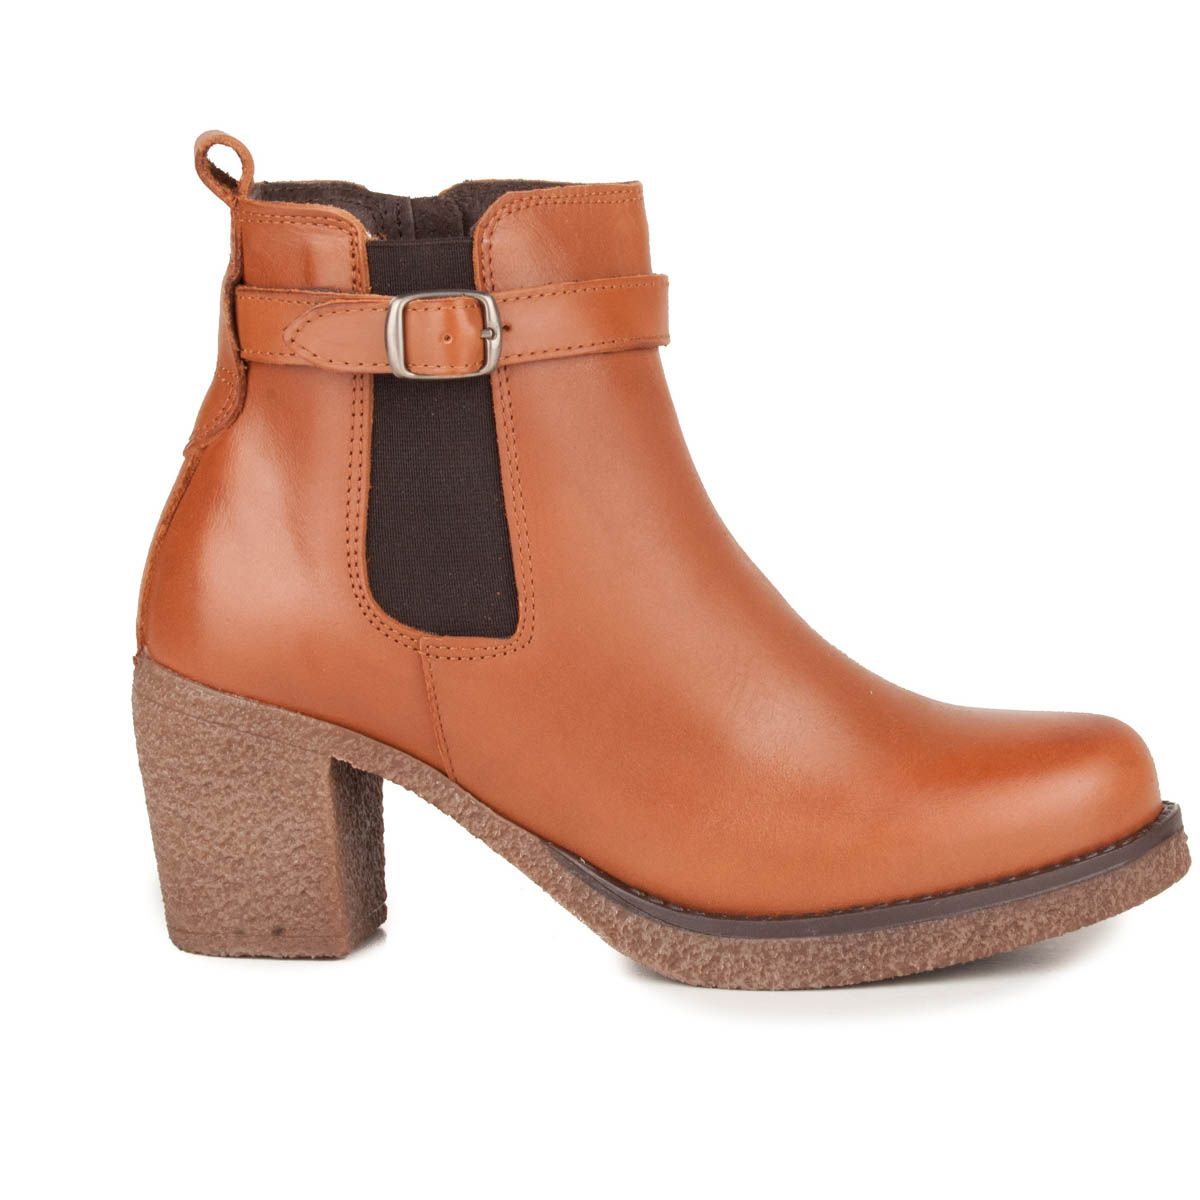 Montevita Buckle Ankle Boot in Camel